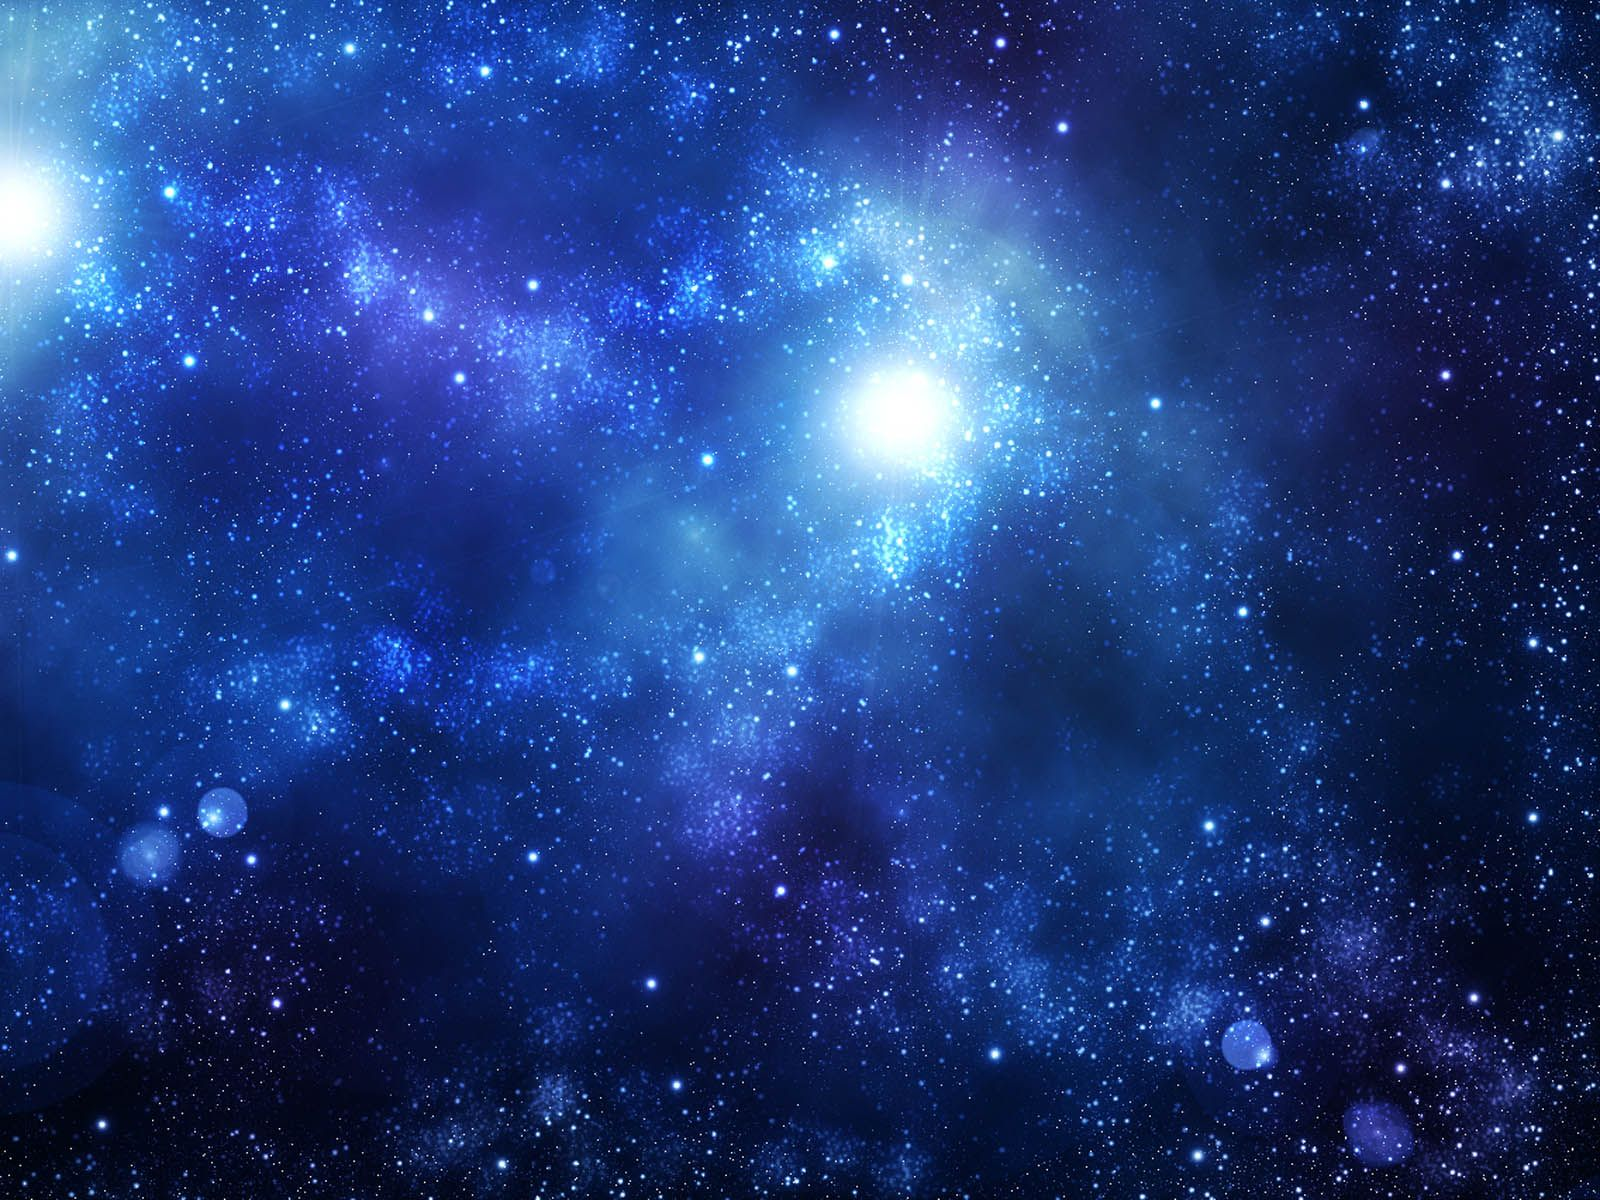 Pin By Zlook Lay On Space Apple Galaxy Wallpaper Blue Galaxy Wallpaper Galaxy Wallpaper